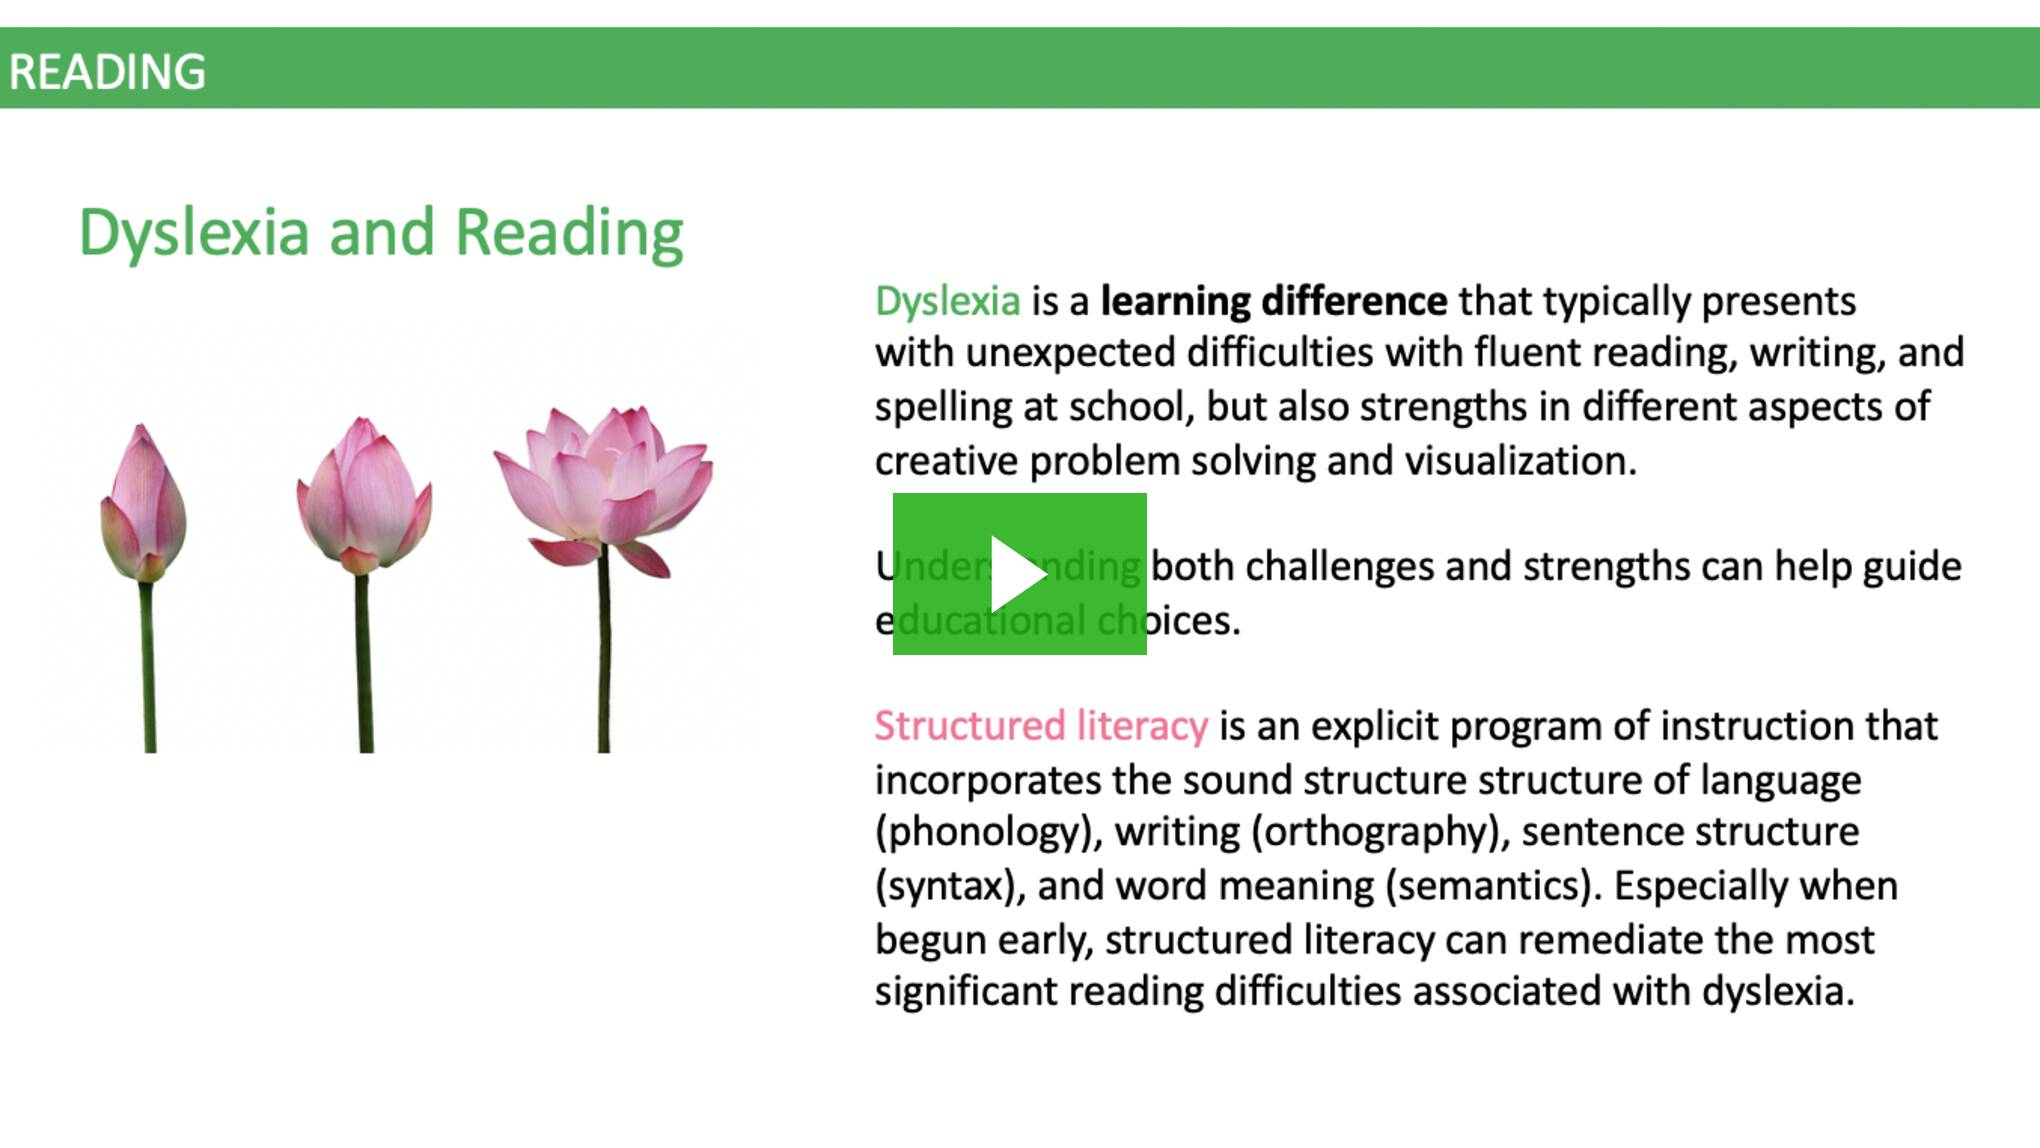 Reading and Structured Literacy